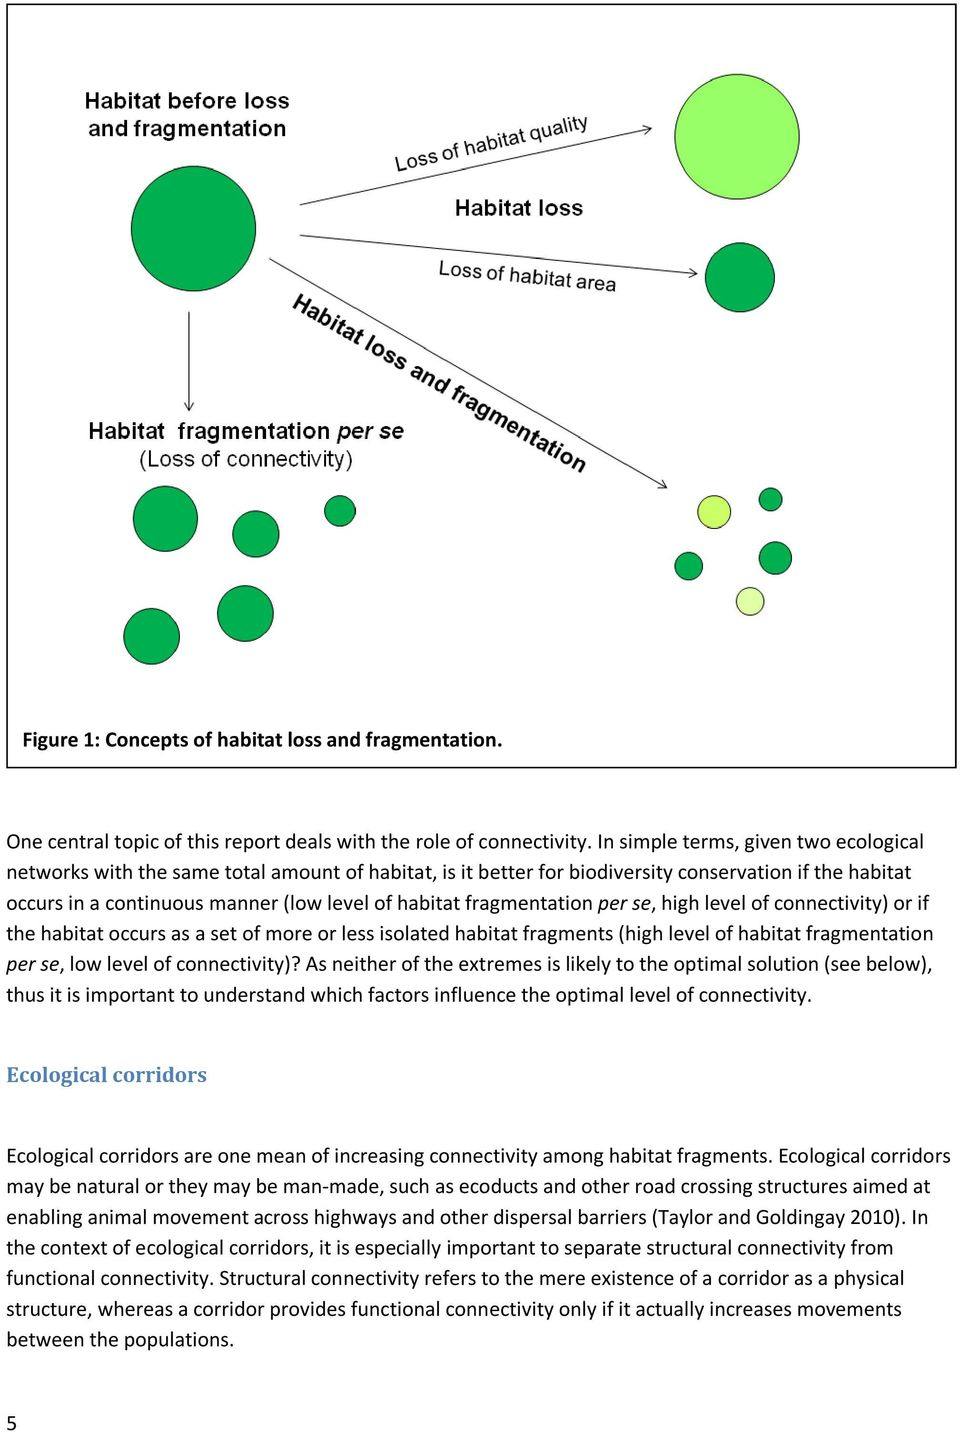 fragmentation per se, high level of connectivity) or if the habitat occurs as a set of more or less isolated habitat fragments (high level of habitat fragmentation per se, low level of connectivity)?